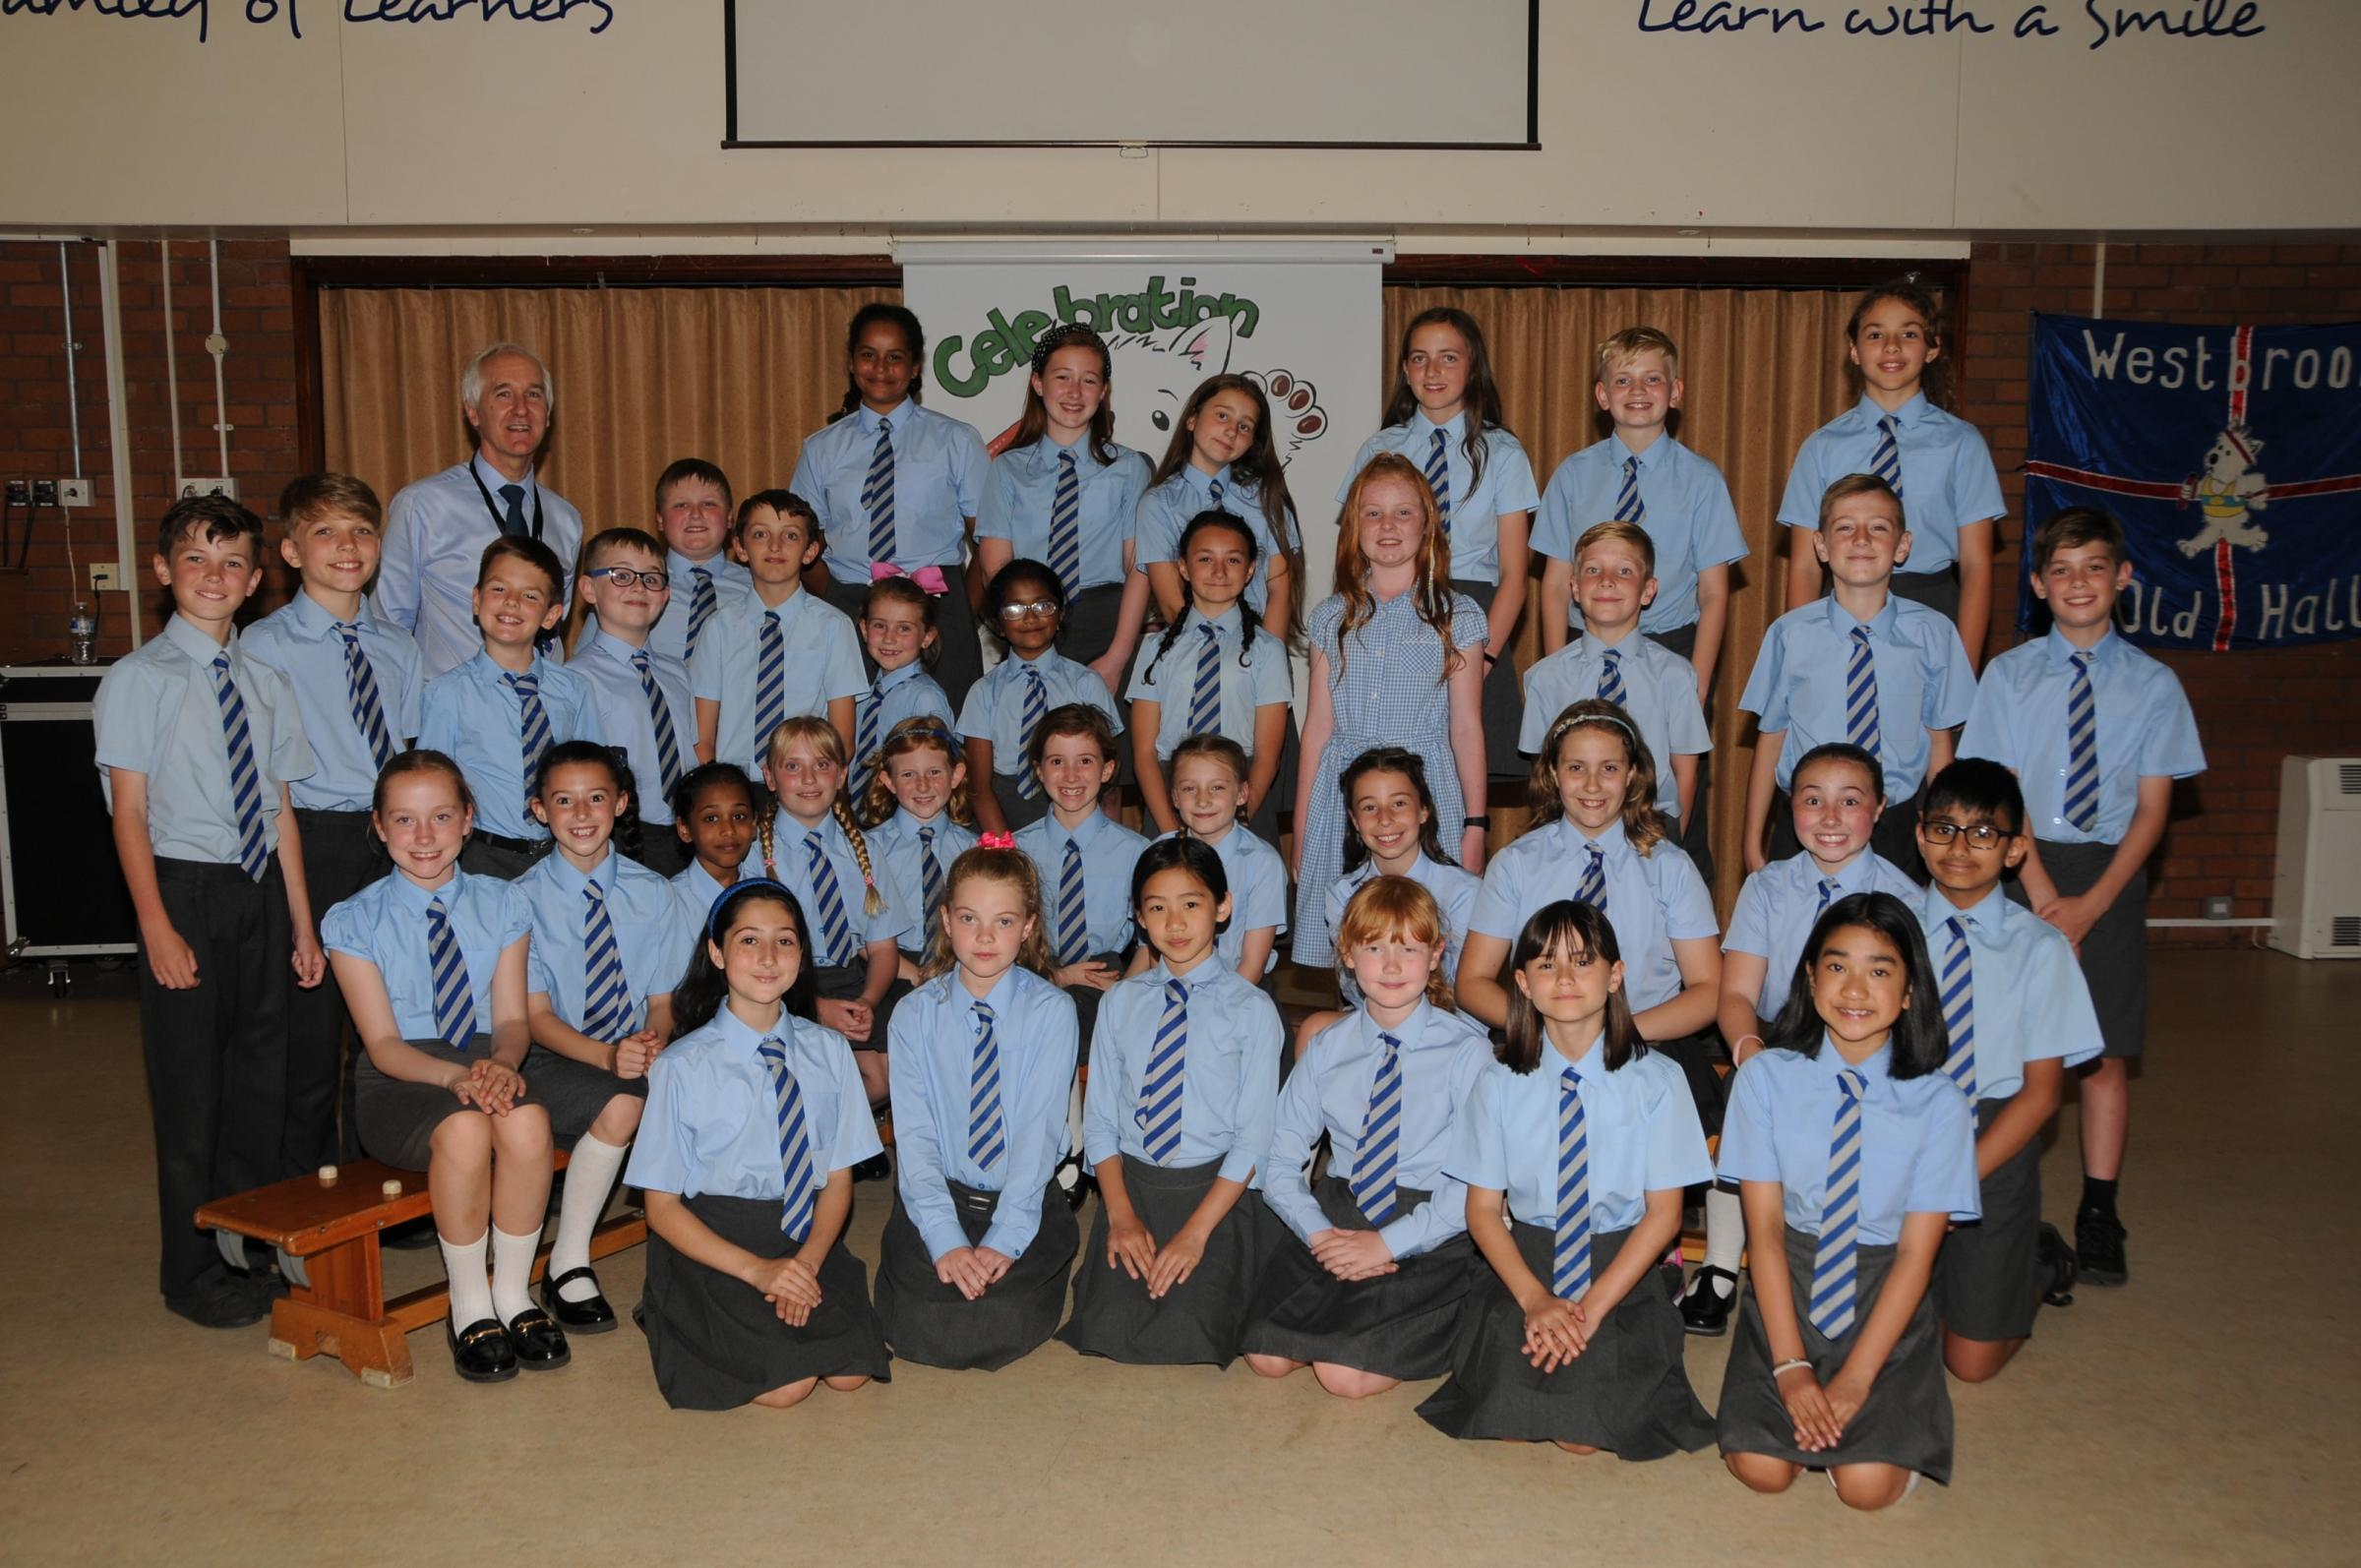 Westbrook Old Hall Primary named Choir of the Year for second year running